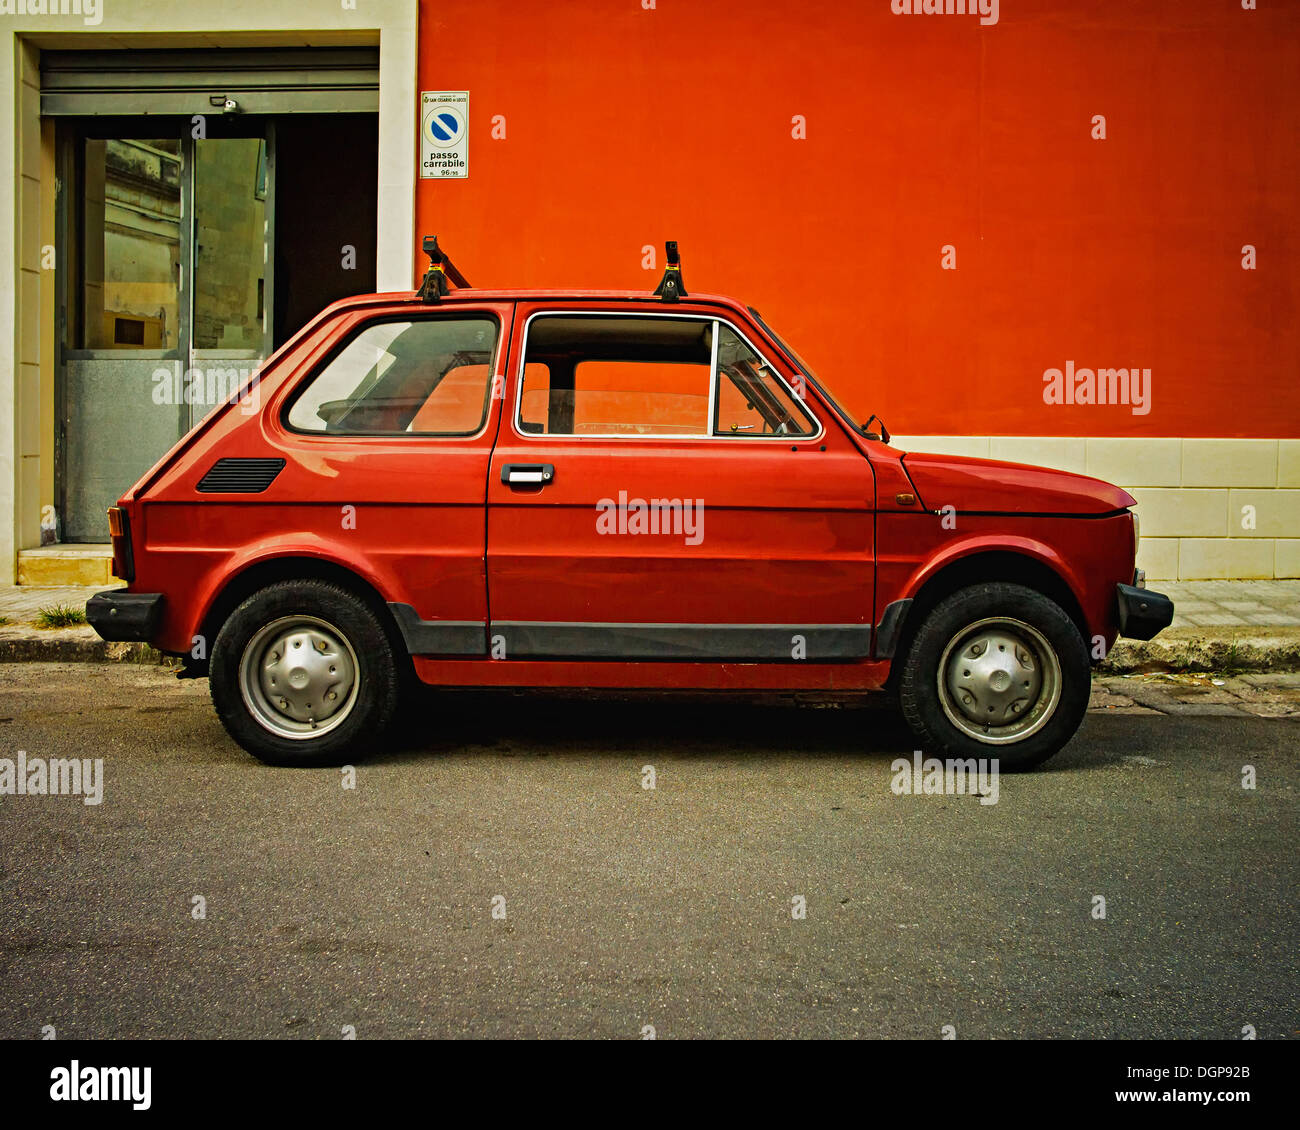 Old car fiat by old house stock photos old car fiat by for Albanese arredamenti san cesario lecce